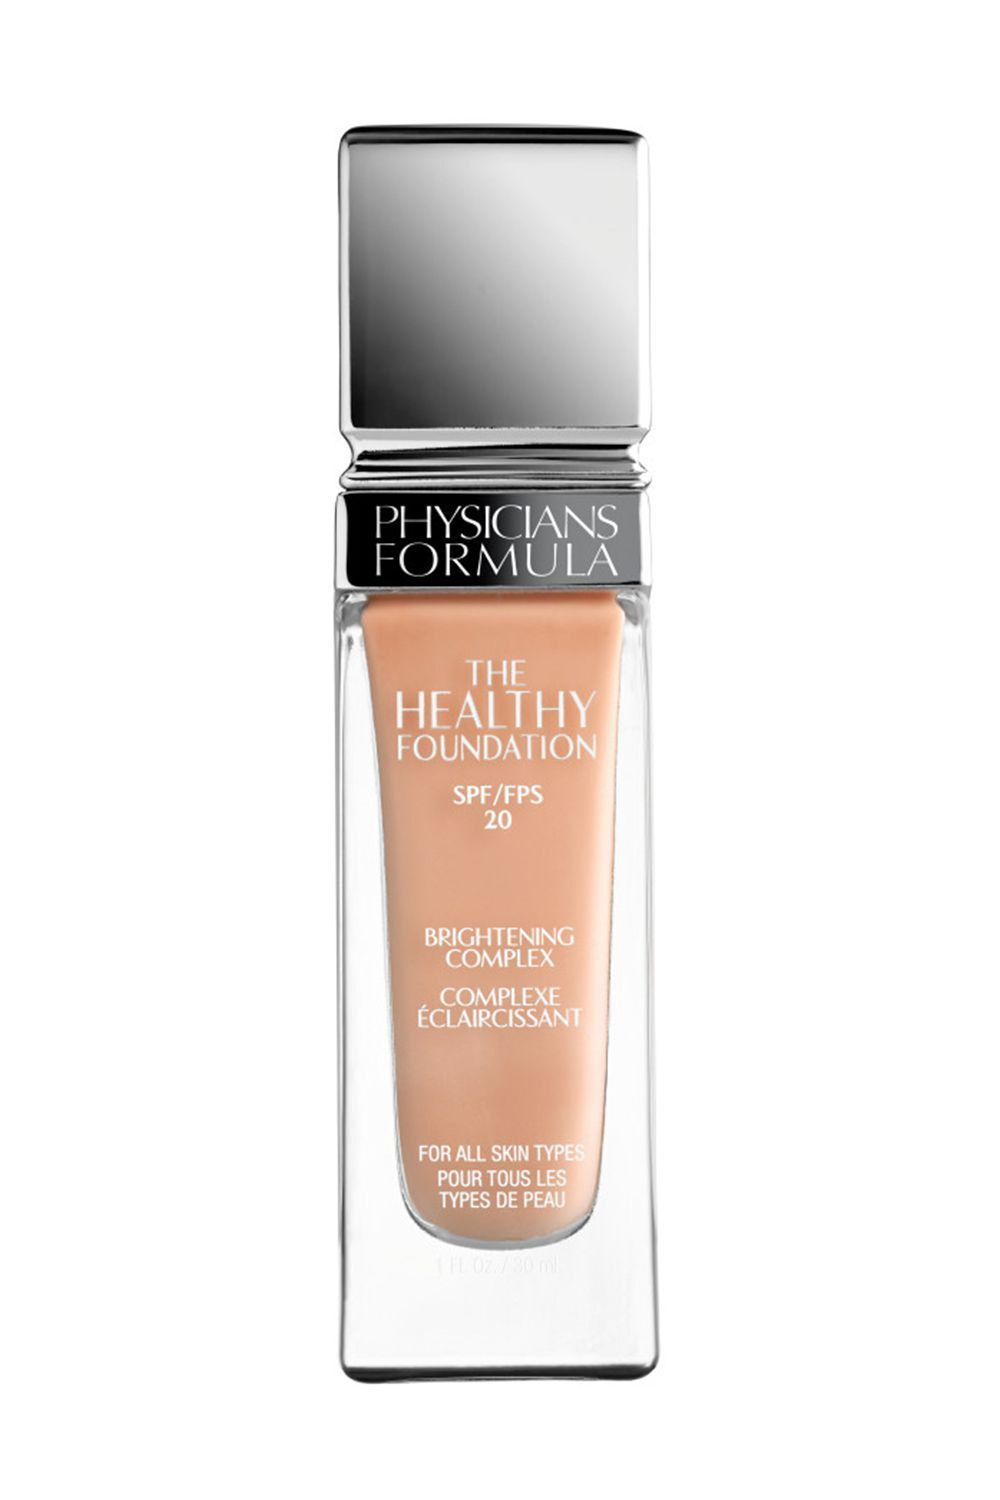 15 Best Drugstore Foundations 2021 Cheap Foundations Under 20